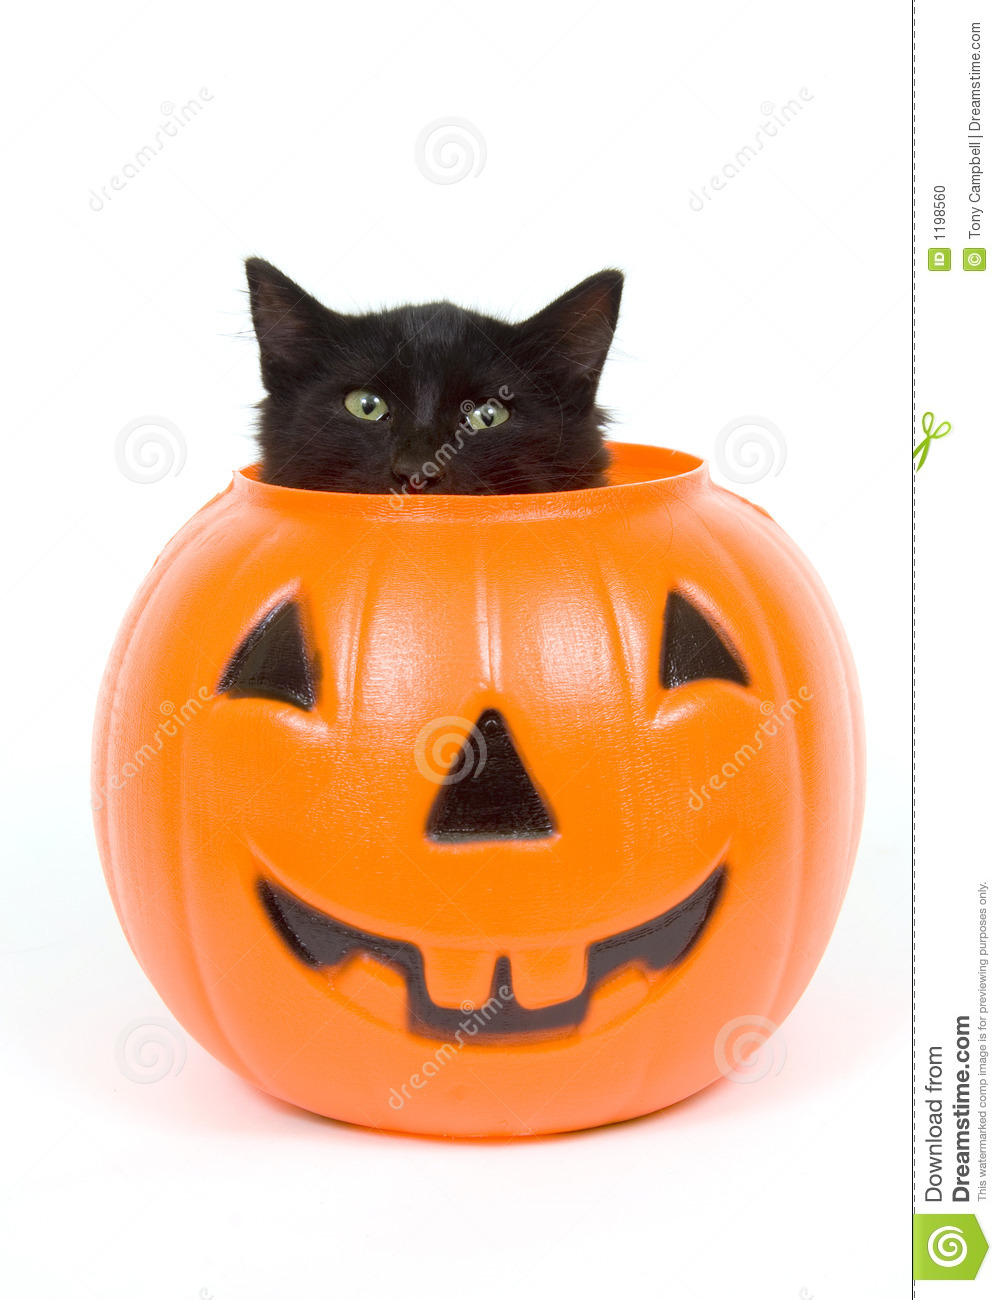 Beautiful Black Cat And Plastic Pumpkin   Halloween Stock Photo   Image Of Saints,  Cuty: 1198560